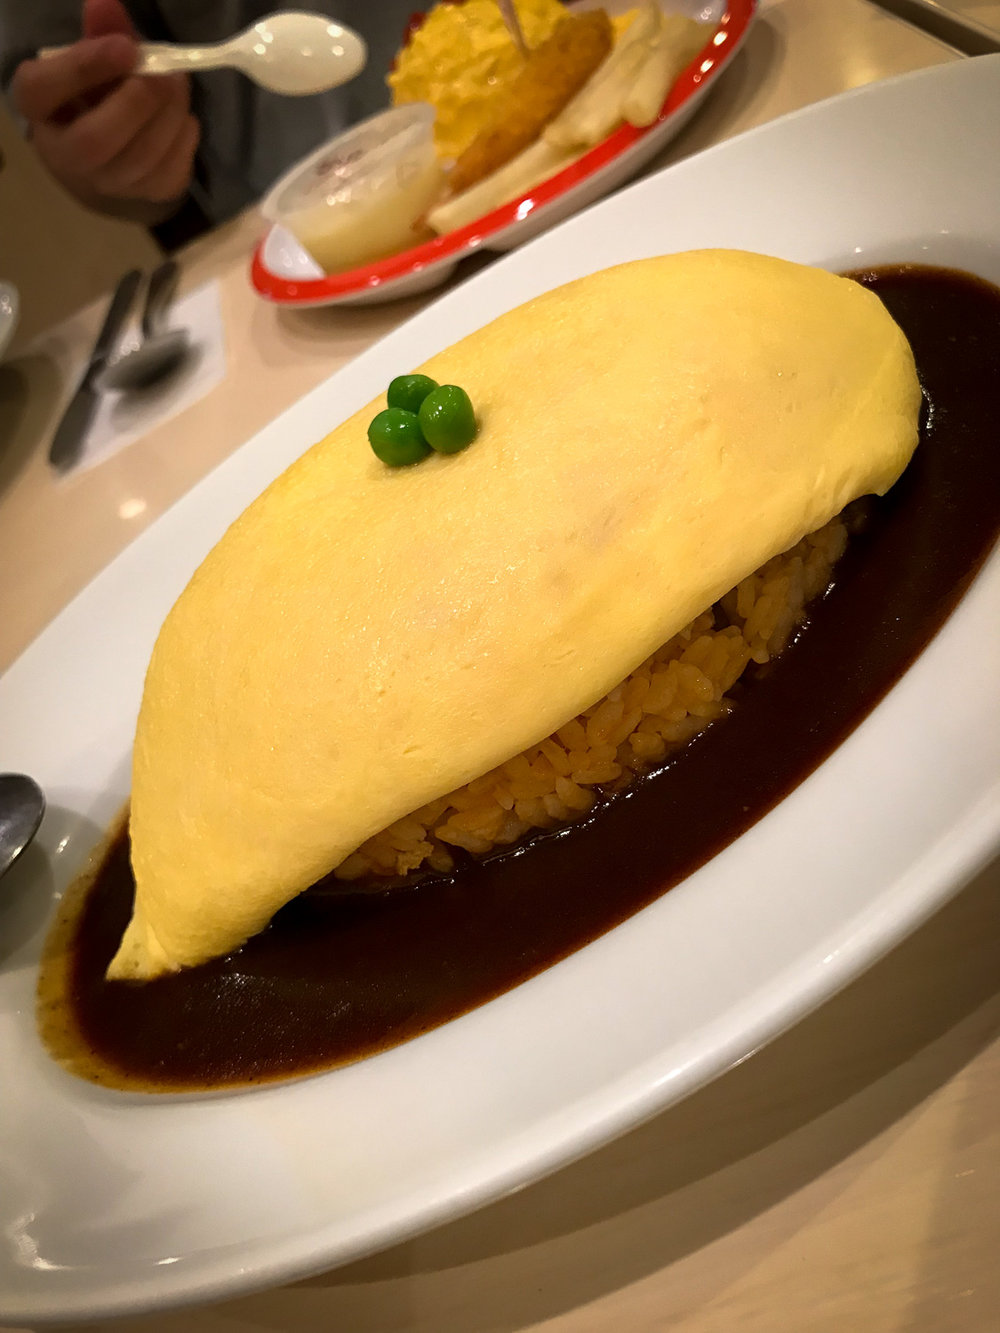 The video of me cutting up the egg of this gorgeous Omurice was a big fail. This one's a cheap but yummy dish in one of Tokyo's train stations.